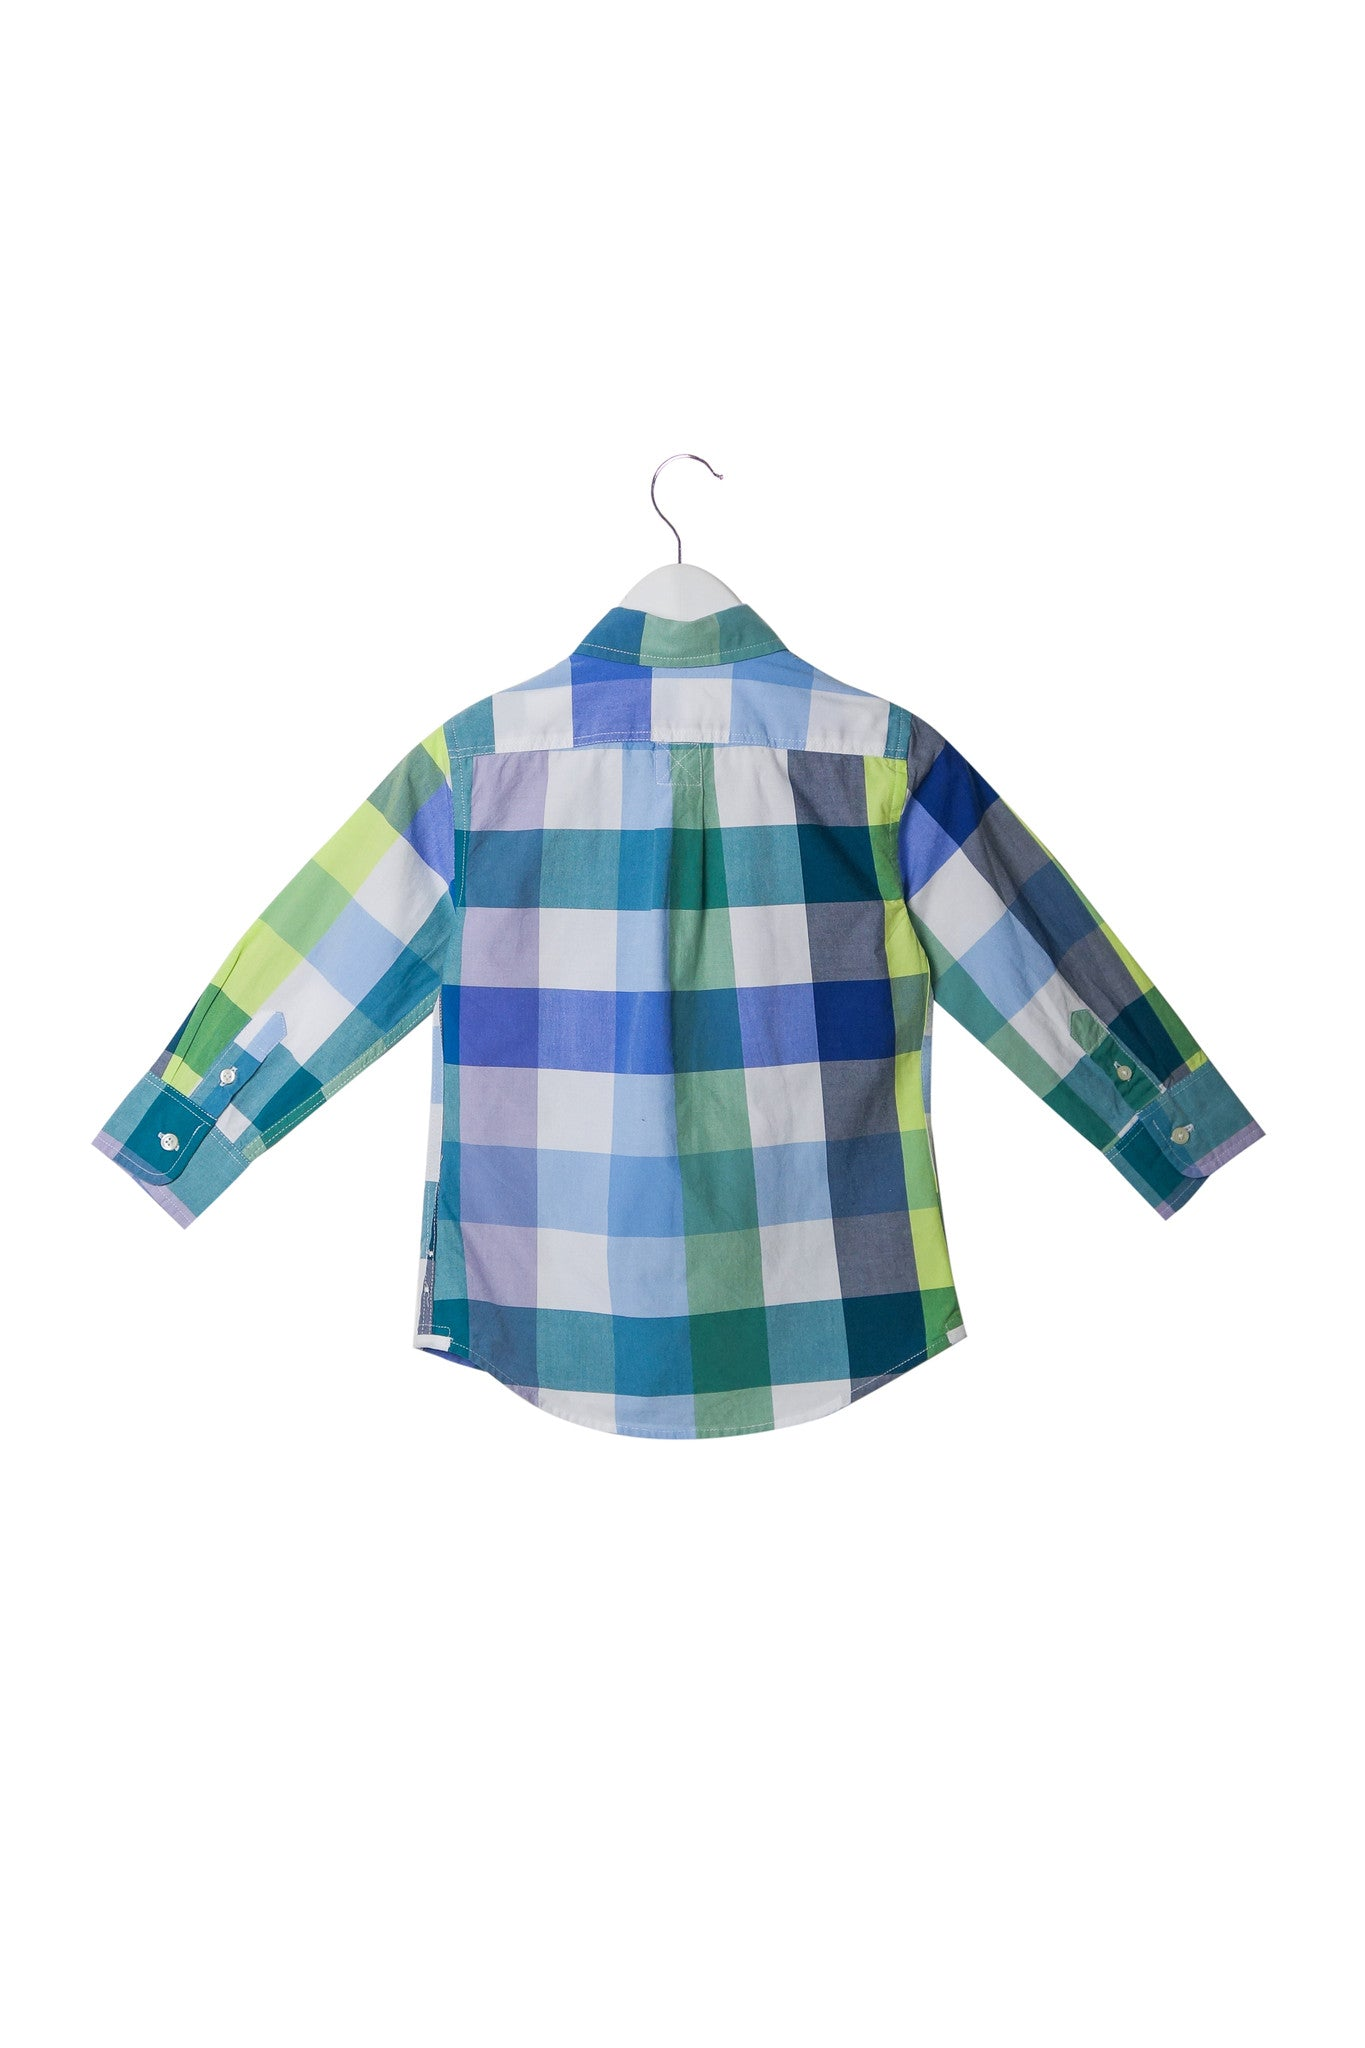 10002971 Crewcuts Kids~Shirt 3T at Retykle